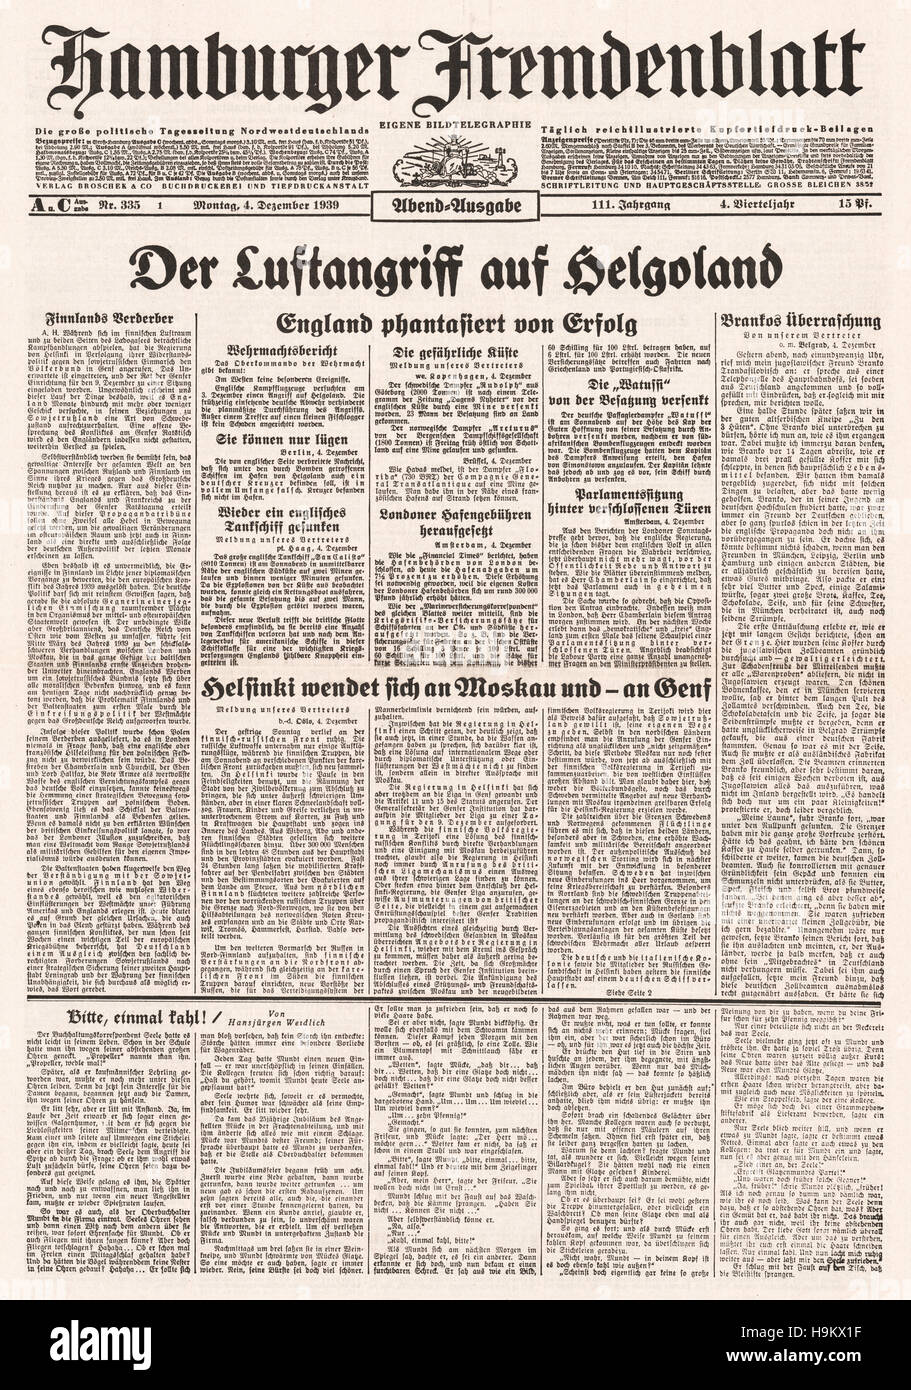 1939 Hamburger Frendenblatt front page reporting bombing of Heligoland by the RAF and plea for help by Finland to - Stock Image